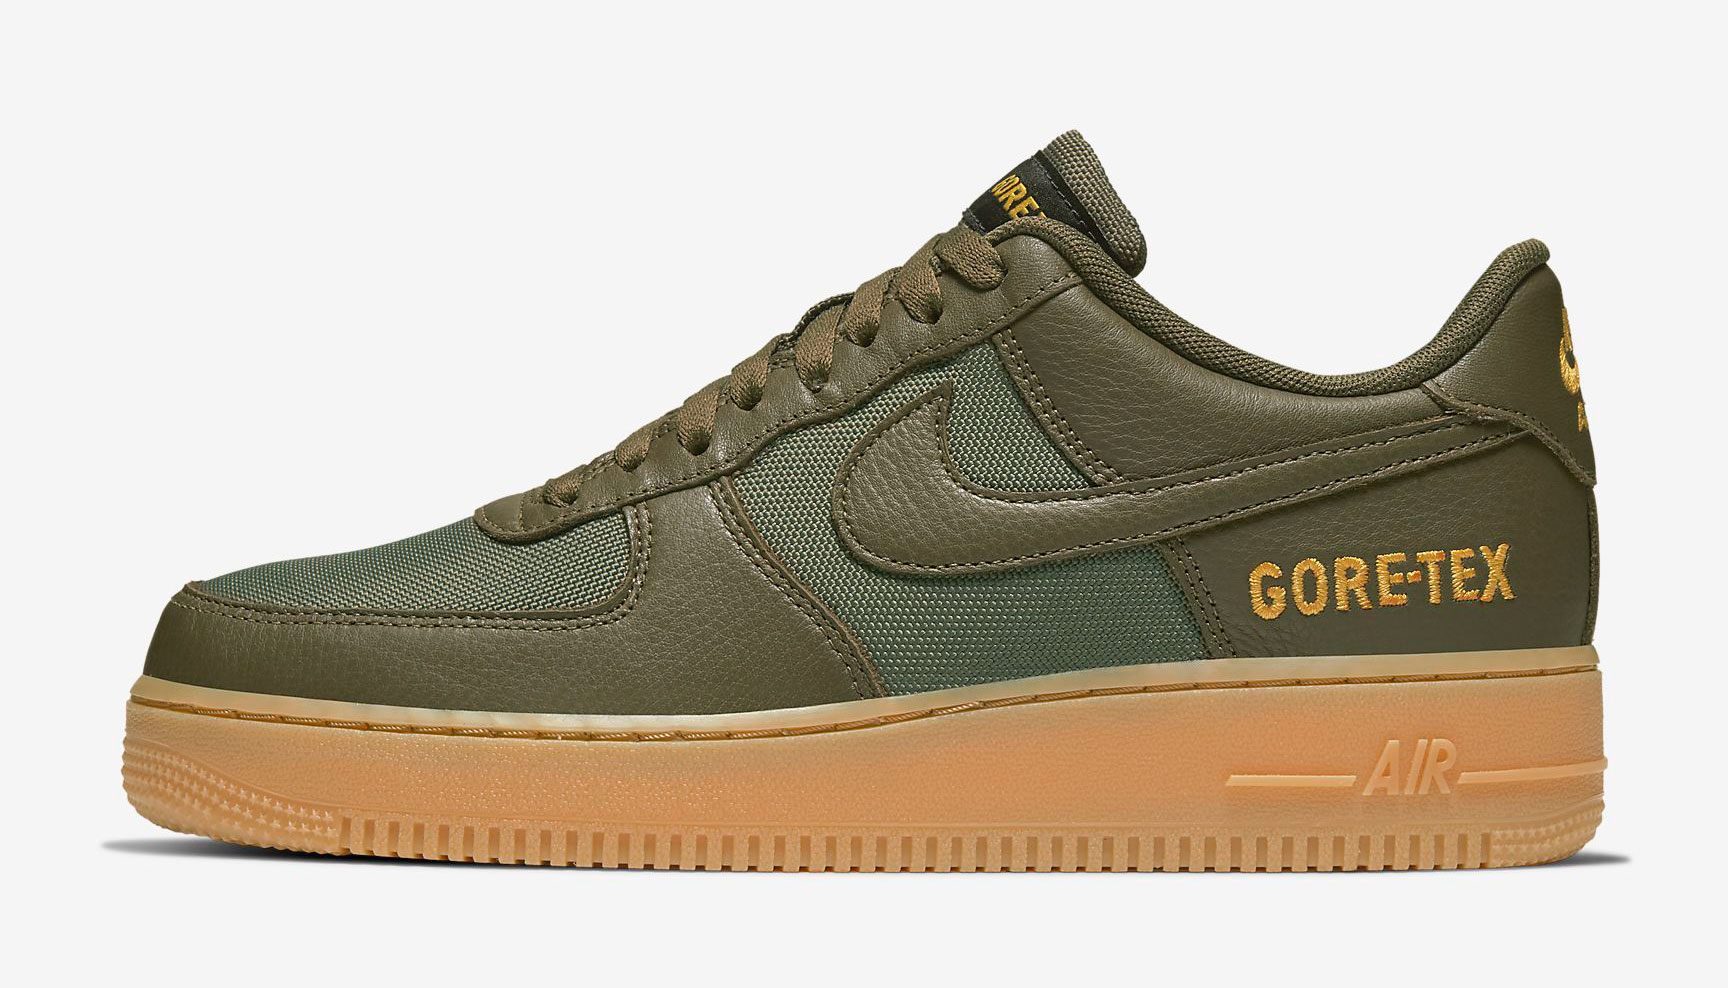 nike-air-force-1-goretex-medium-olive-release-date